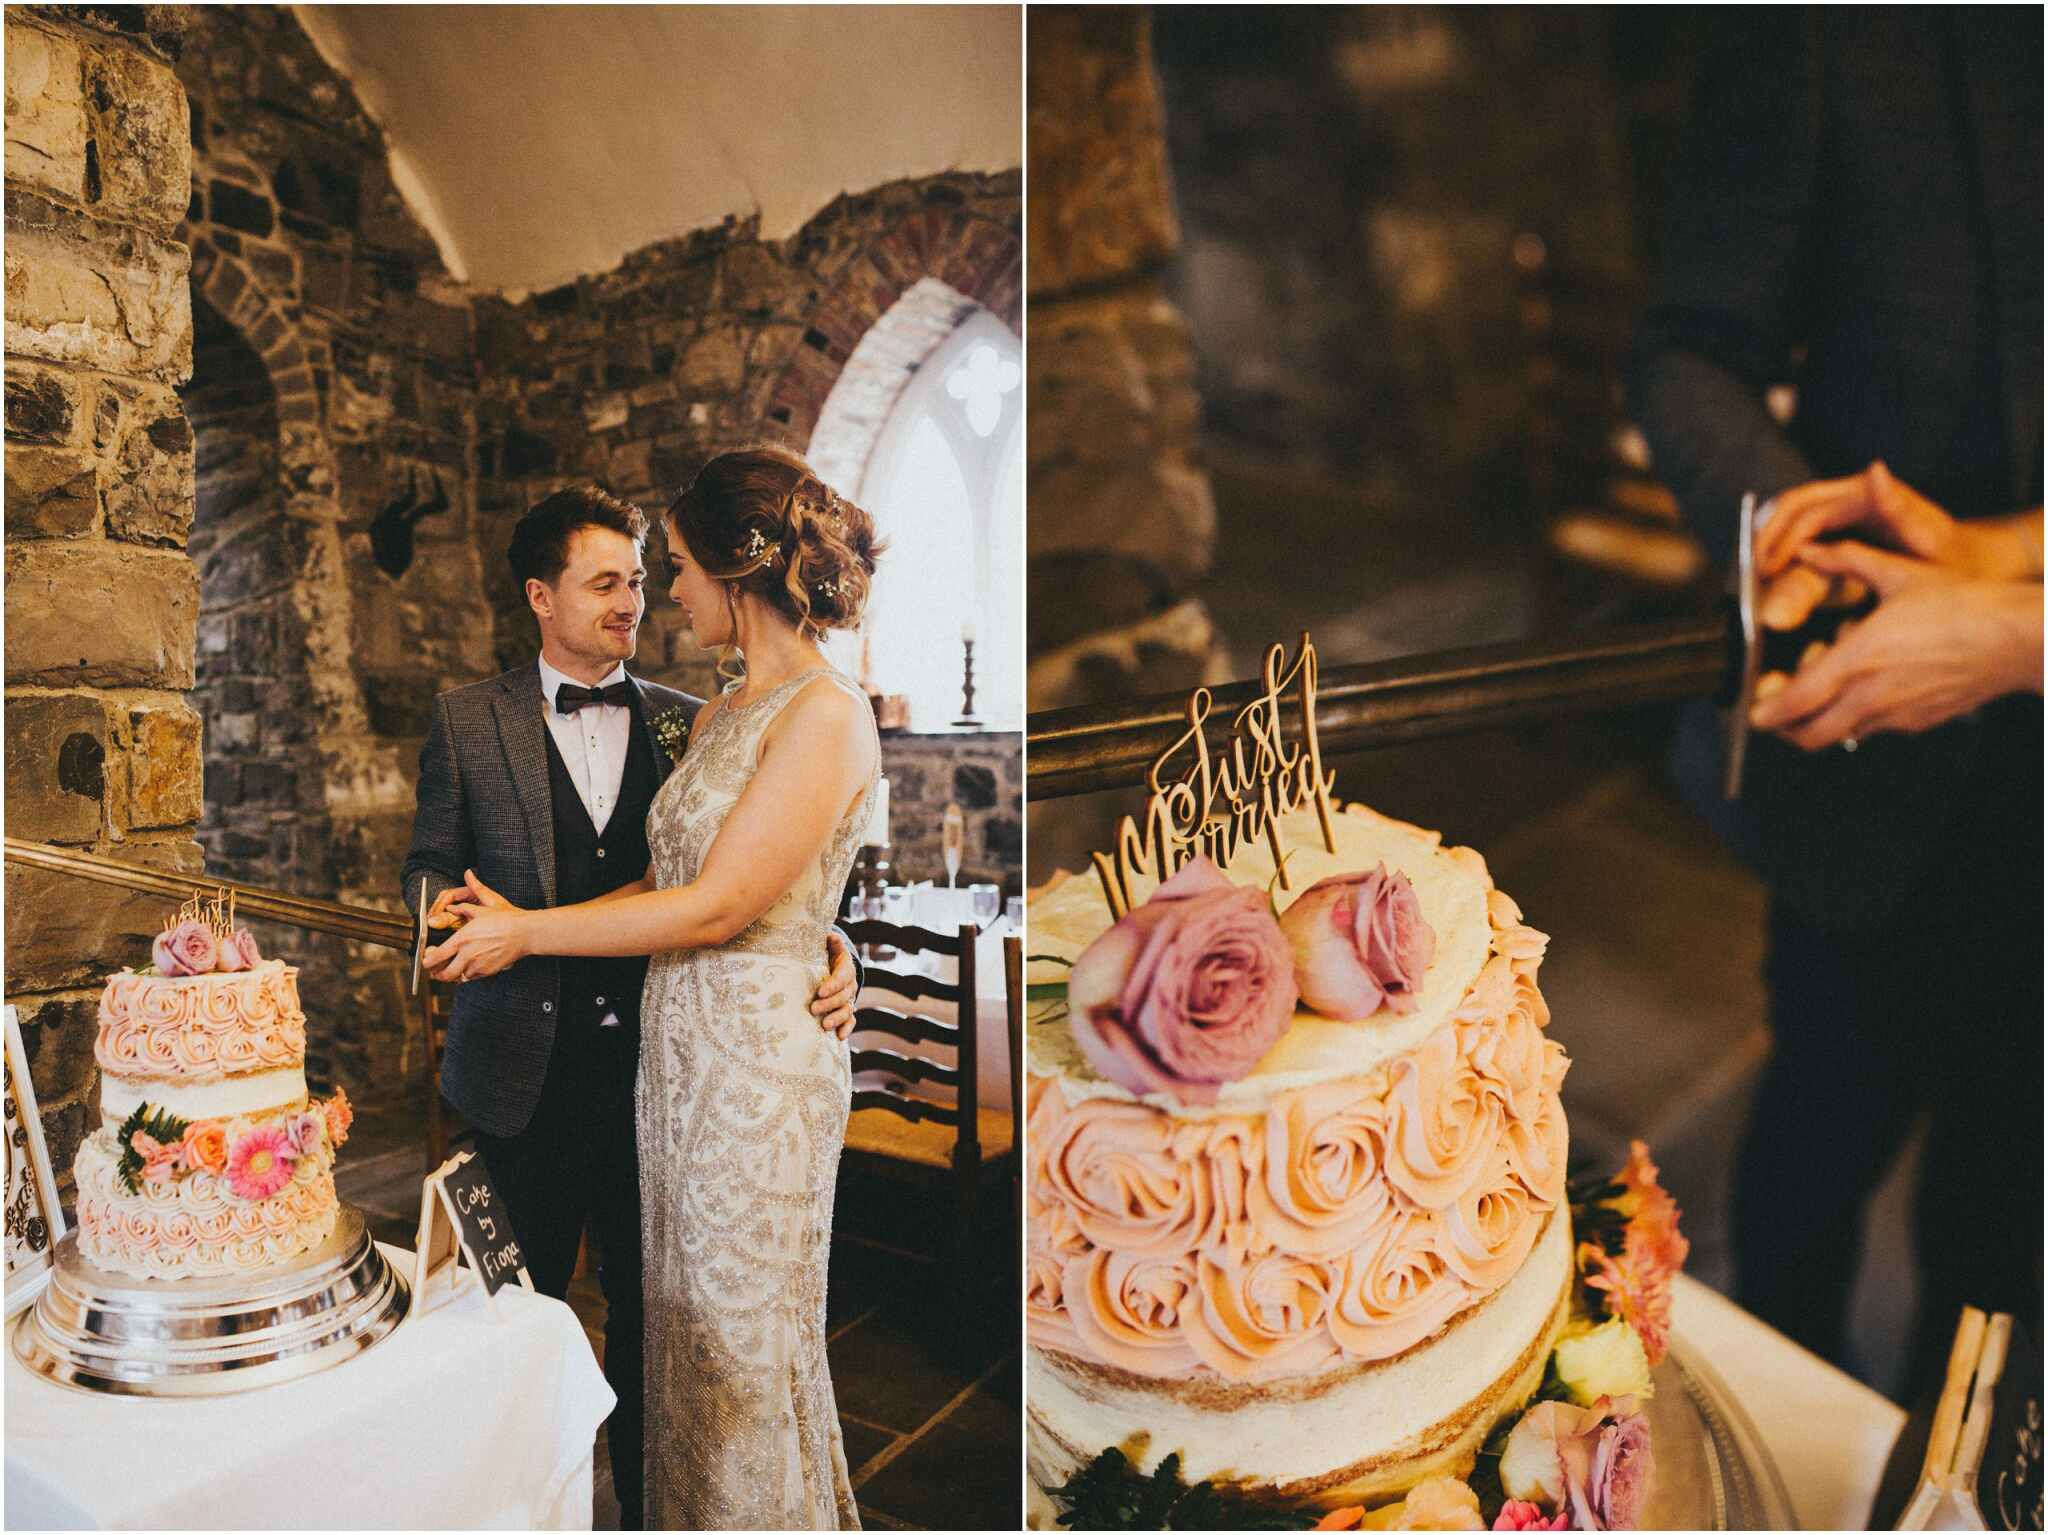 Barberstown castle Ireland Irish Castle Wedding00077 - Fun and Relaxed wedding and elopement photography in Ireland, perfect for adventurous and outdoorsy couples